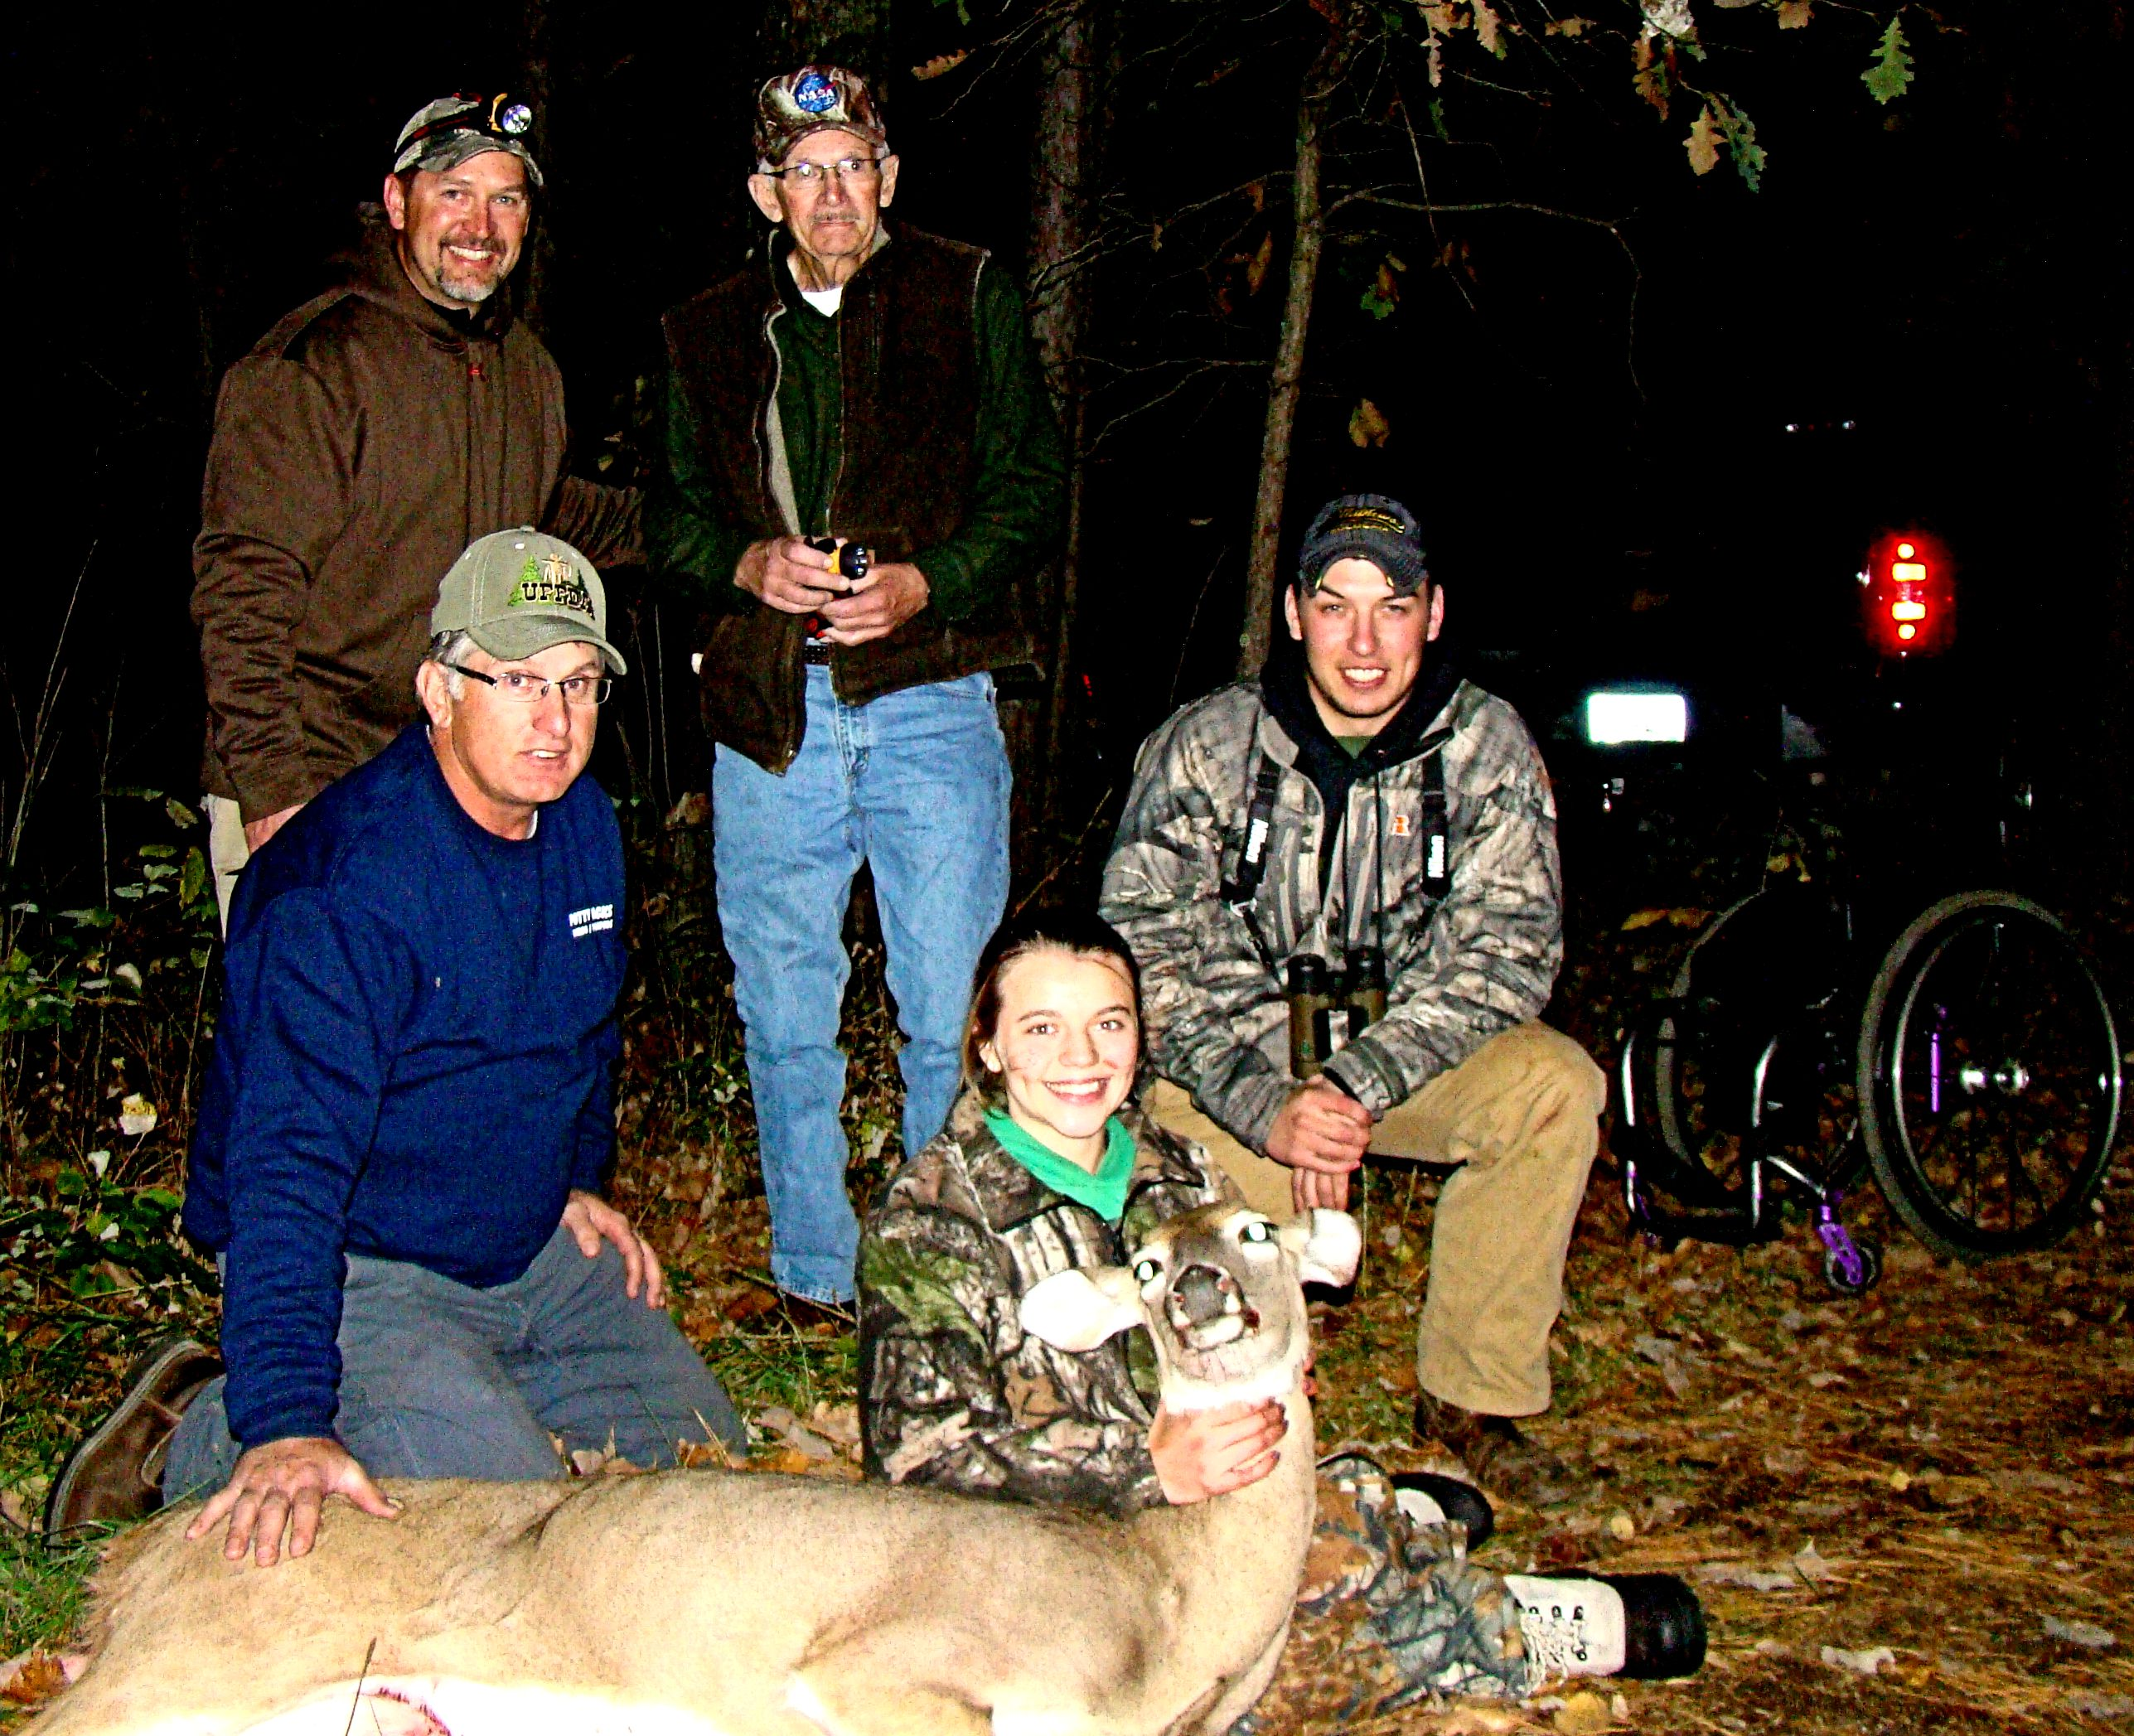 Brynn Duncan surrounded by (l to r) Richard Swenson on ground, Kelly, Dean and Kody Craft (3-generations of excellence).